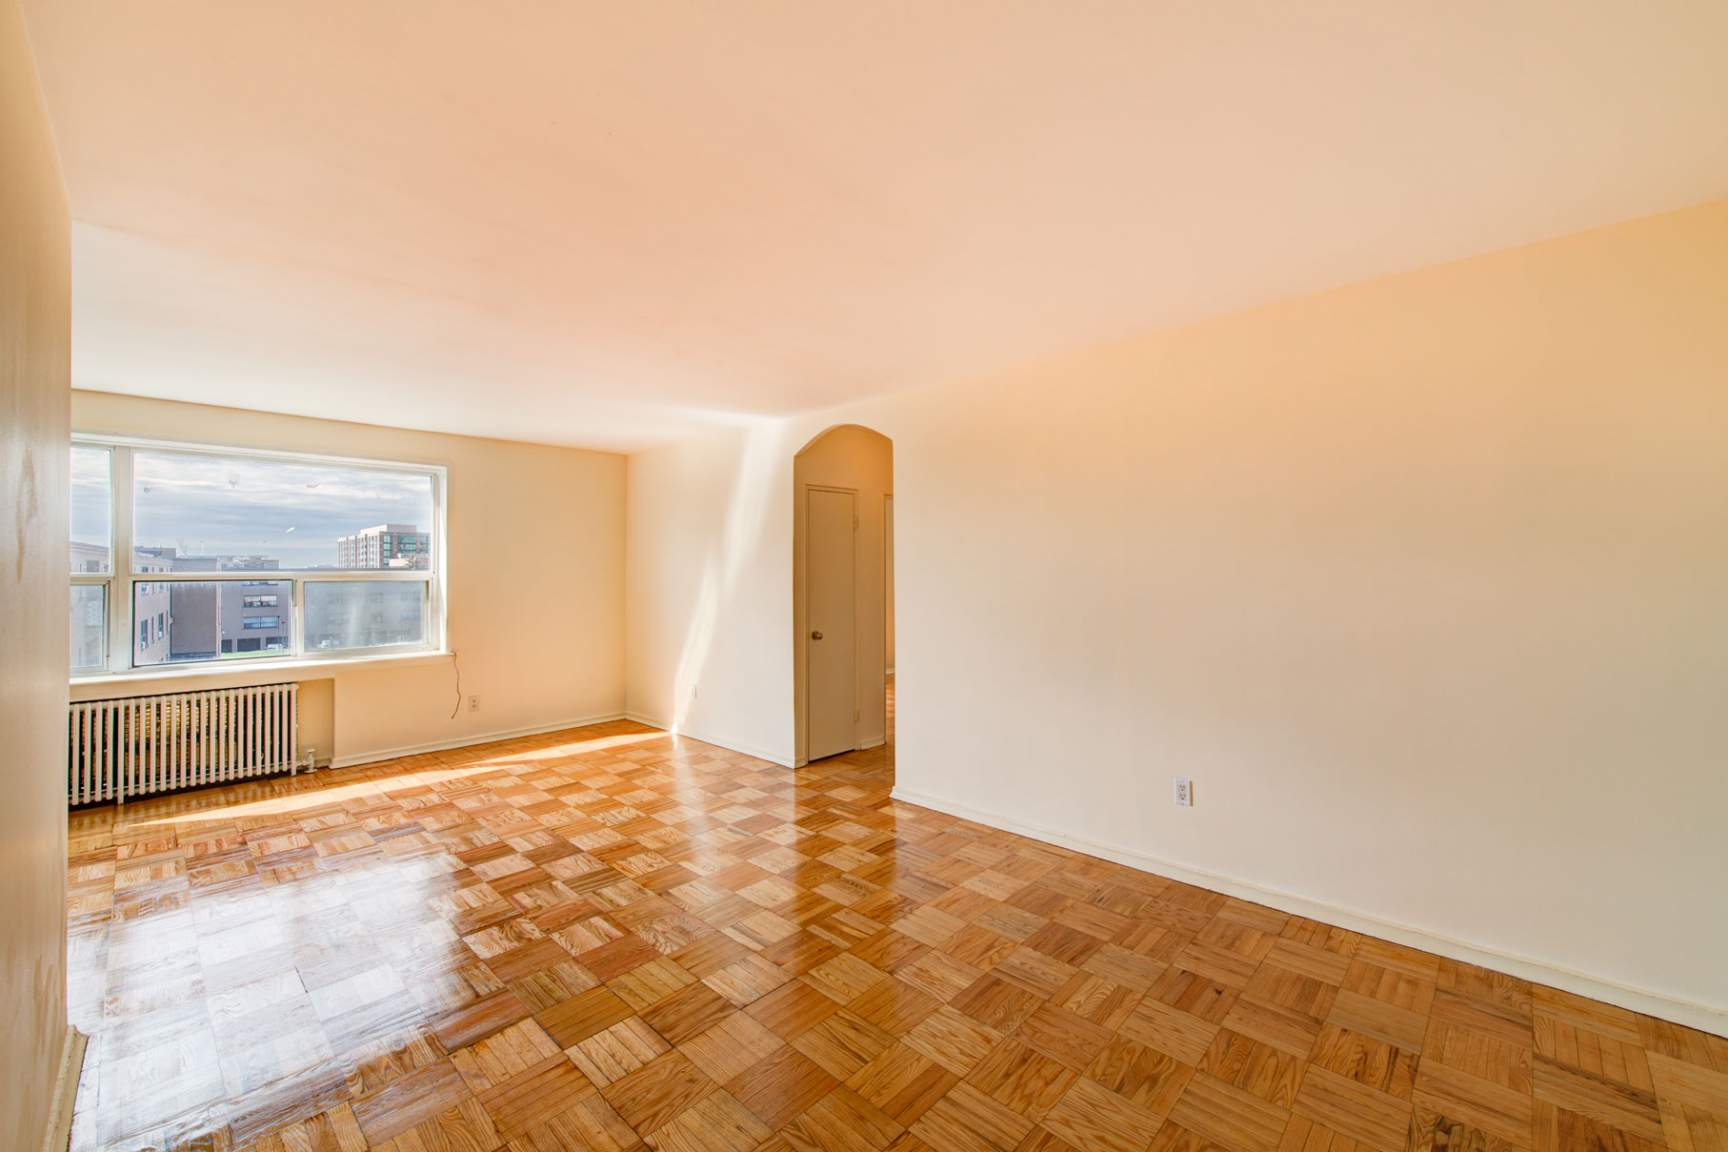 1 bedroom Apartments for rent in Toronto at Faywood - Vinci Community - Photo 06 - RentersPages – L402215